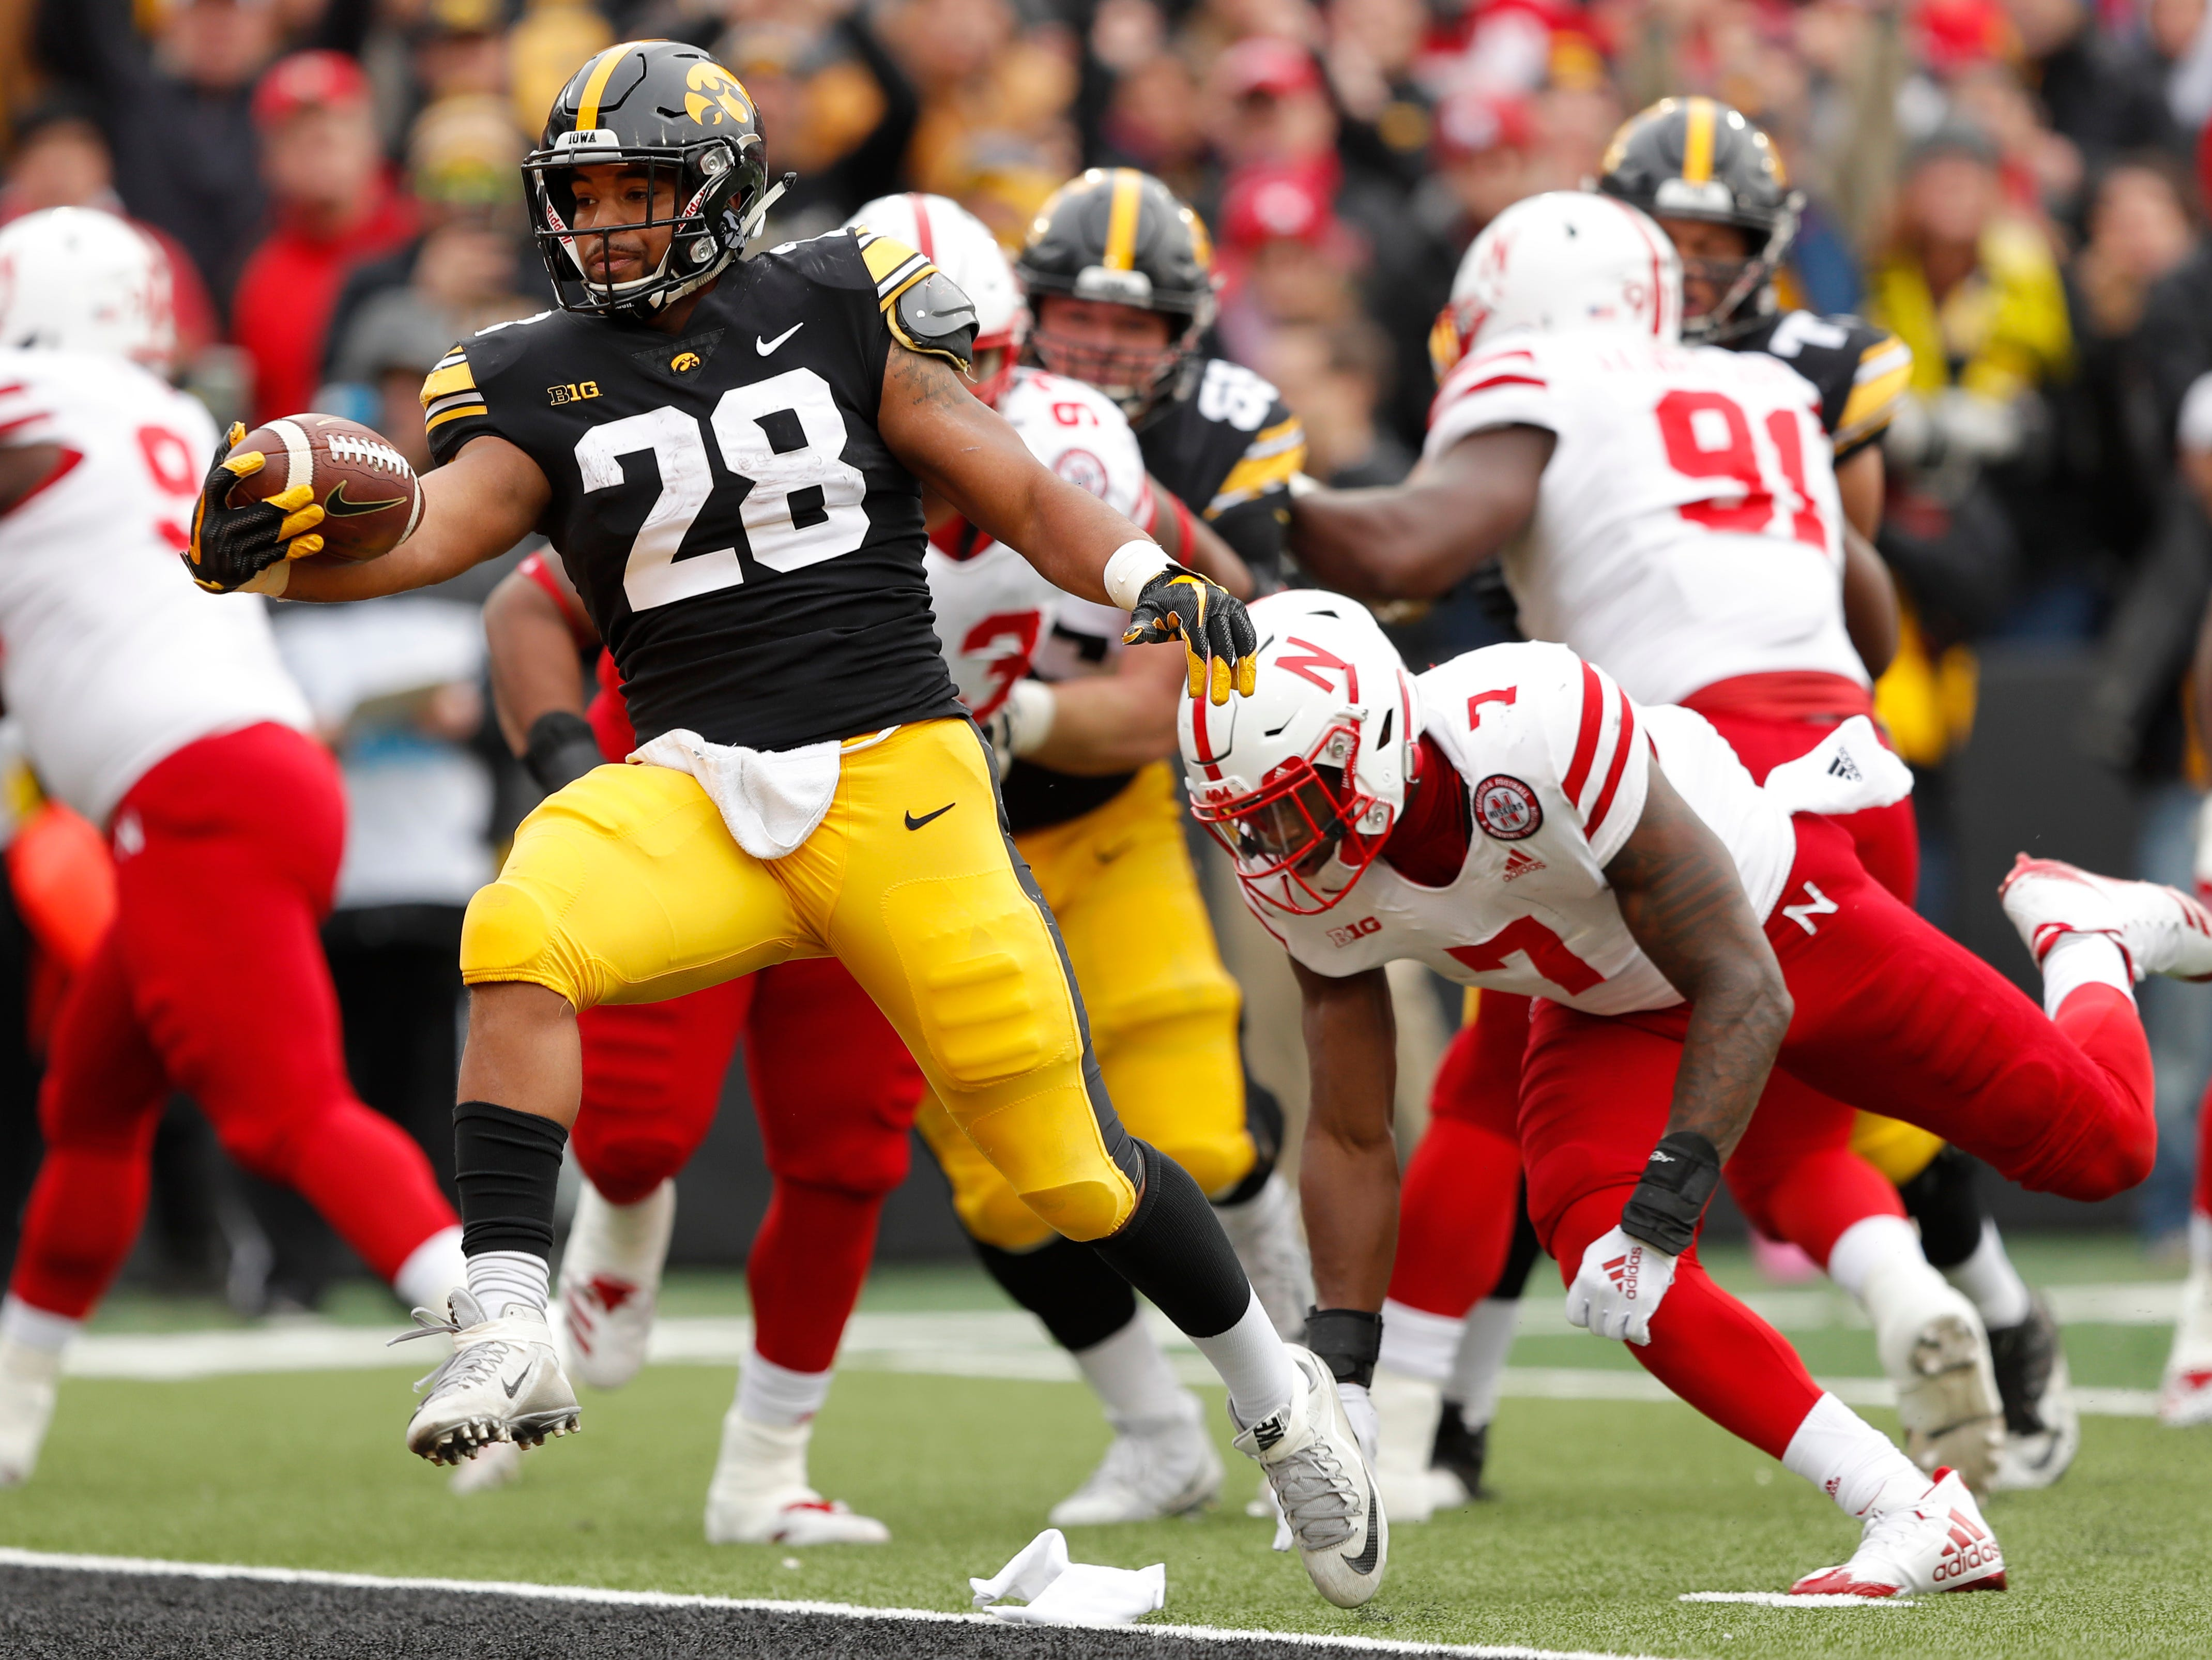 5. Iowa (8-4, 5-4) – After losing three straight, the Hawkeyes responded by winning their final two games, including holding off Nebraska in a rivalry game to close the season. Where it leaves the Hawkeyes is hard to guess, but a top-tier bowl game is likely thanks to three non-conference wins to help balance out some Big Ten woes. Last week: 6.